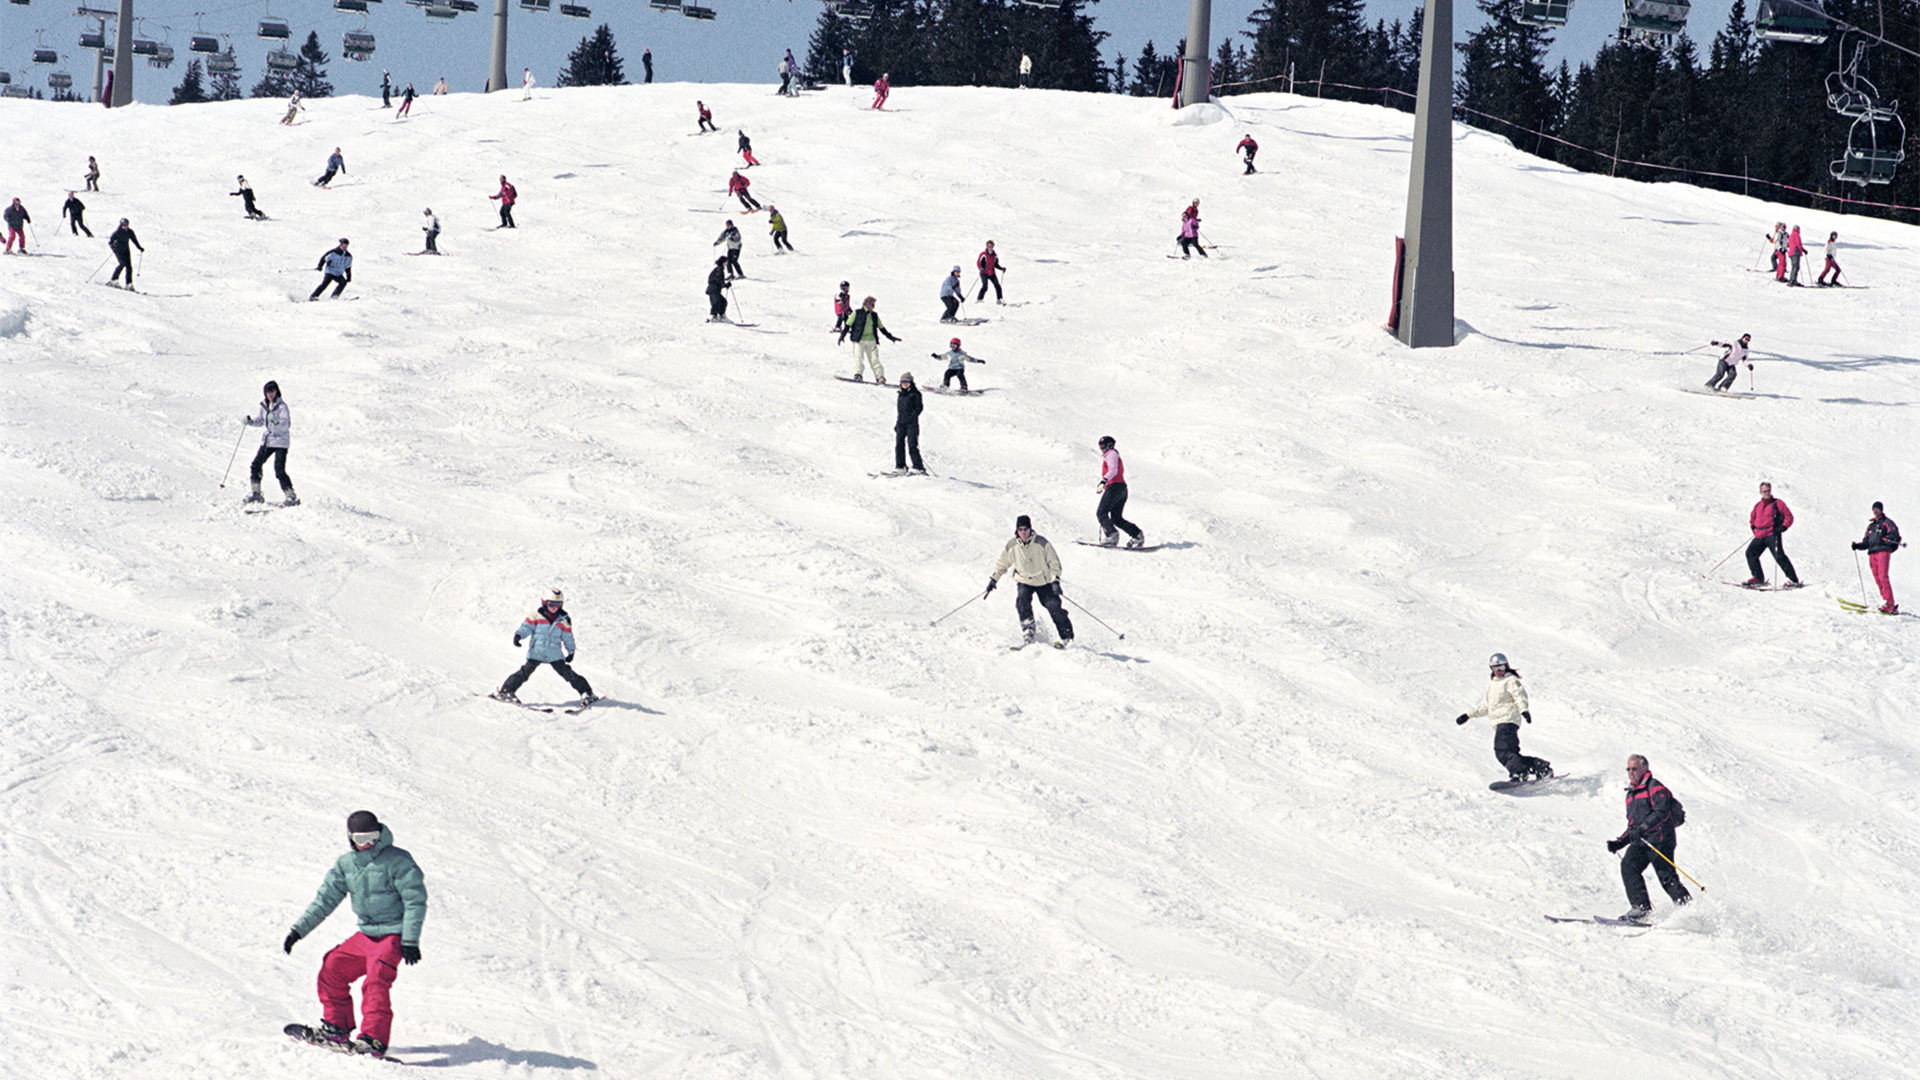 Skiiers and snowboarders in Schelgelkopf, Lech, Austria